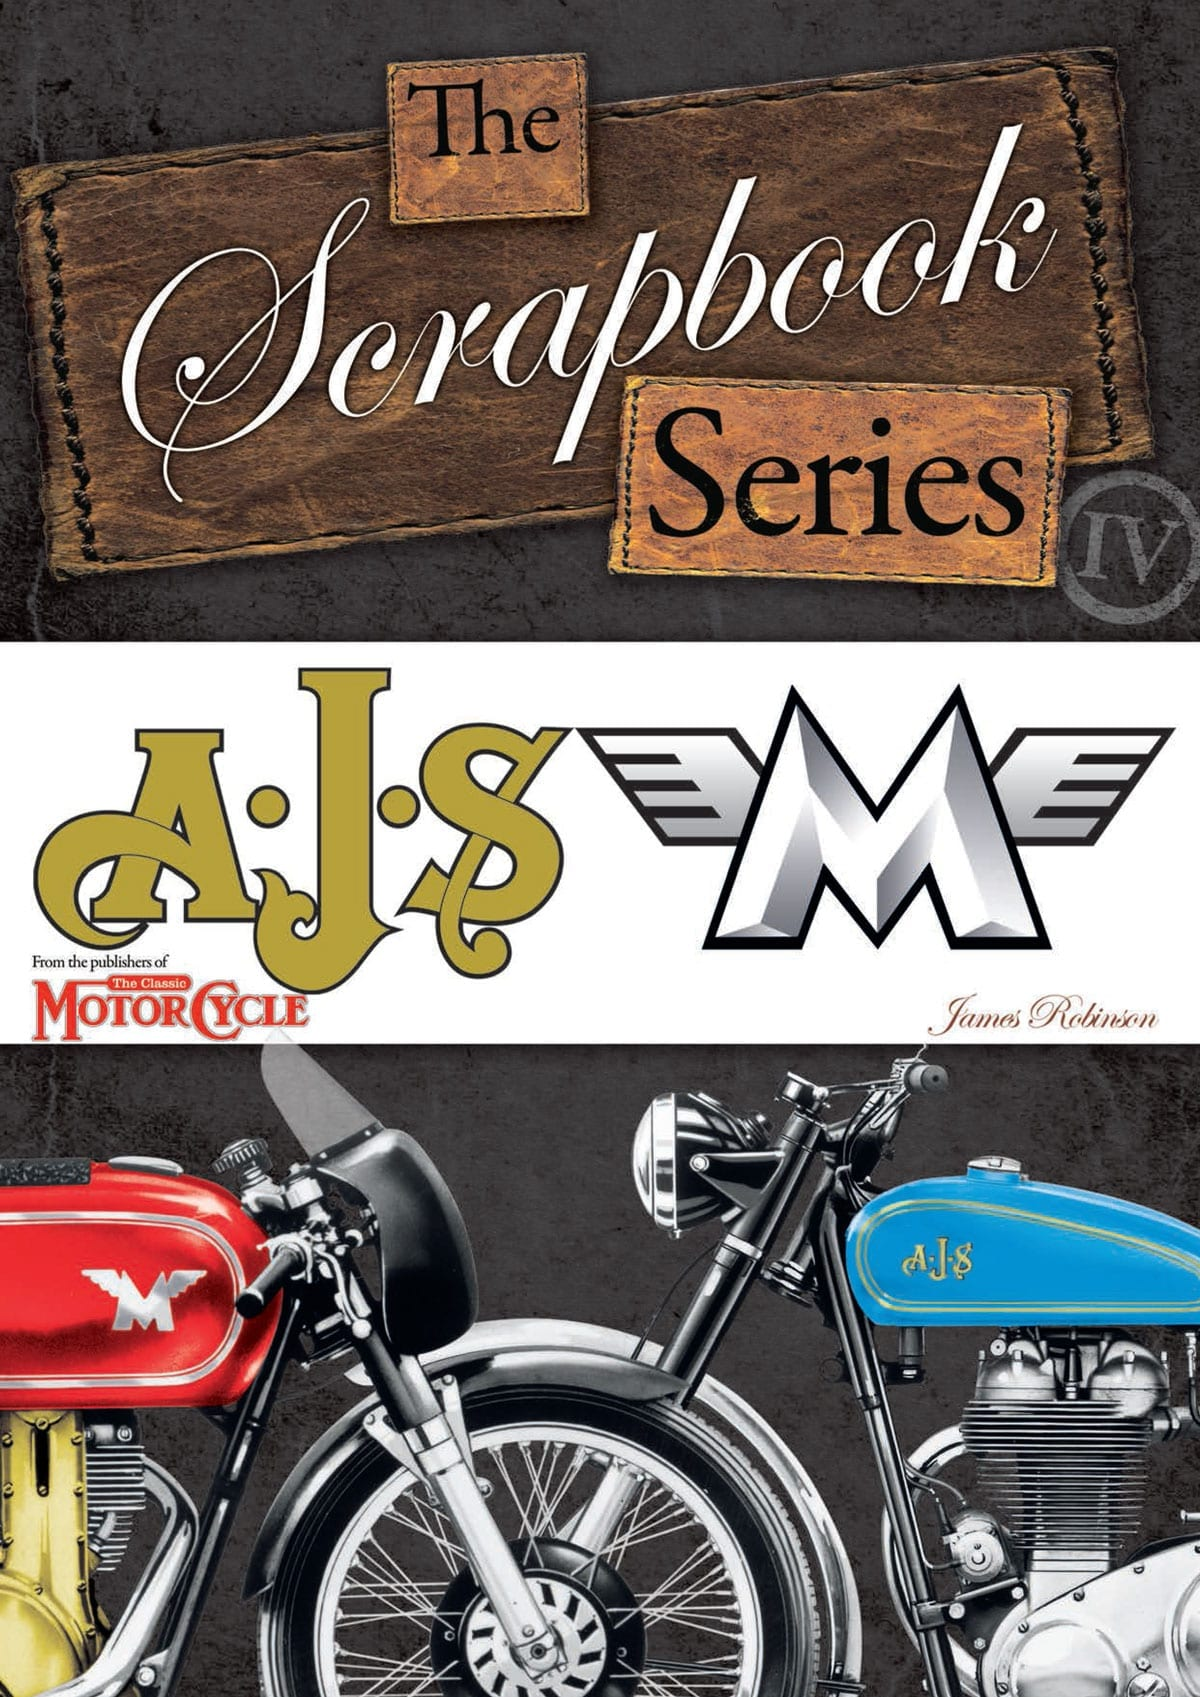 The Scrapbook Series- AJS